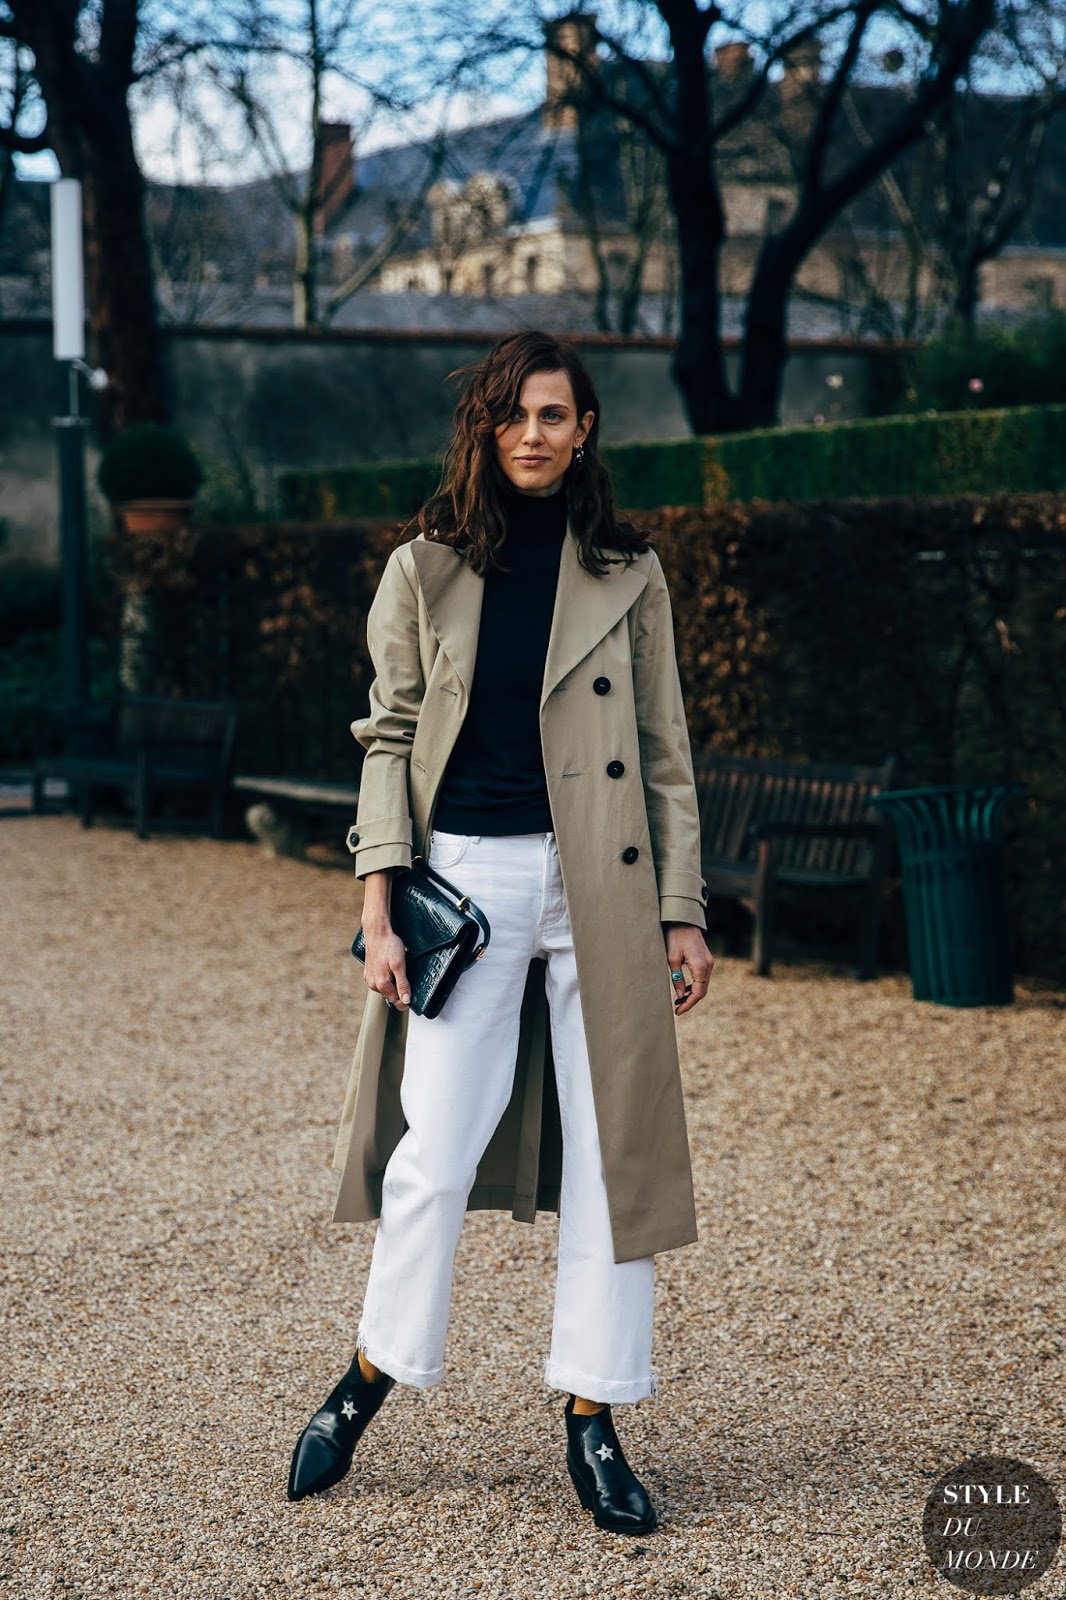 Transitional Spring Outfit Idea: Model Aymeline Valade in a trench coat, black turtleneck sweater, cropped wide-leg jeans, and black pointed-toe ankle boots